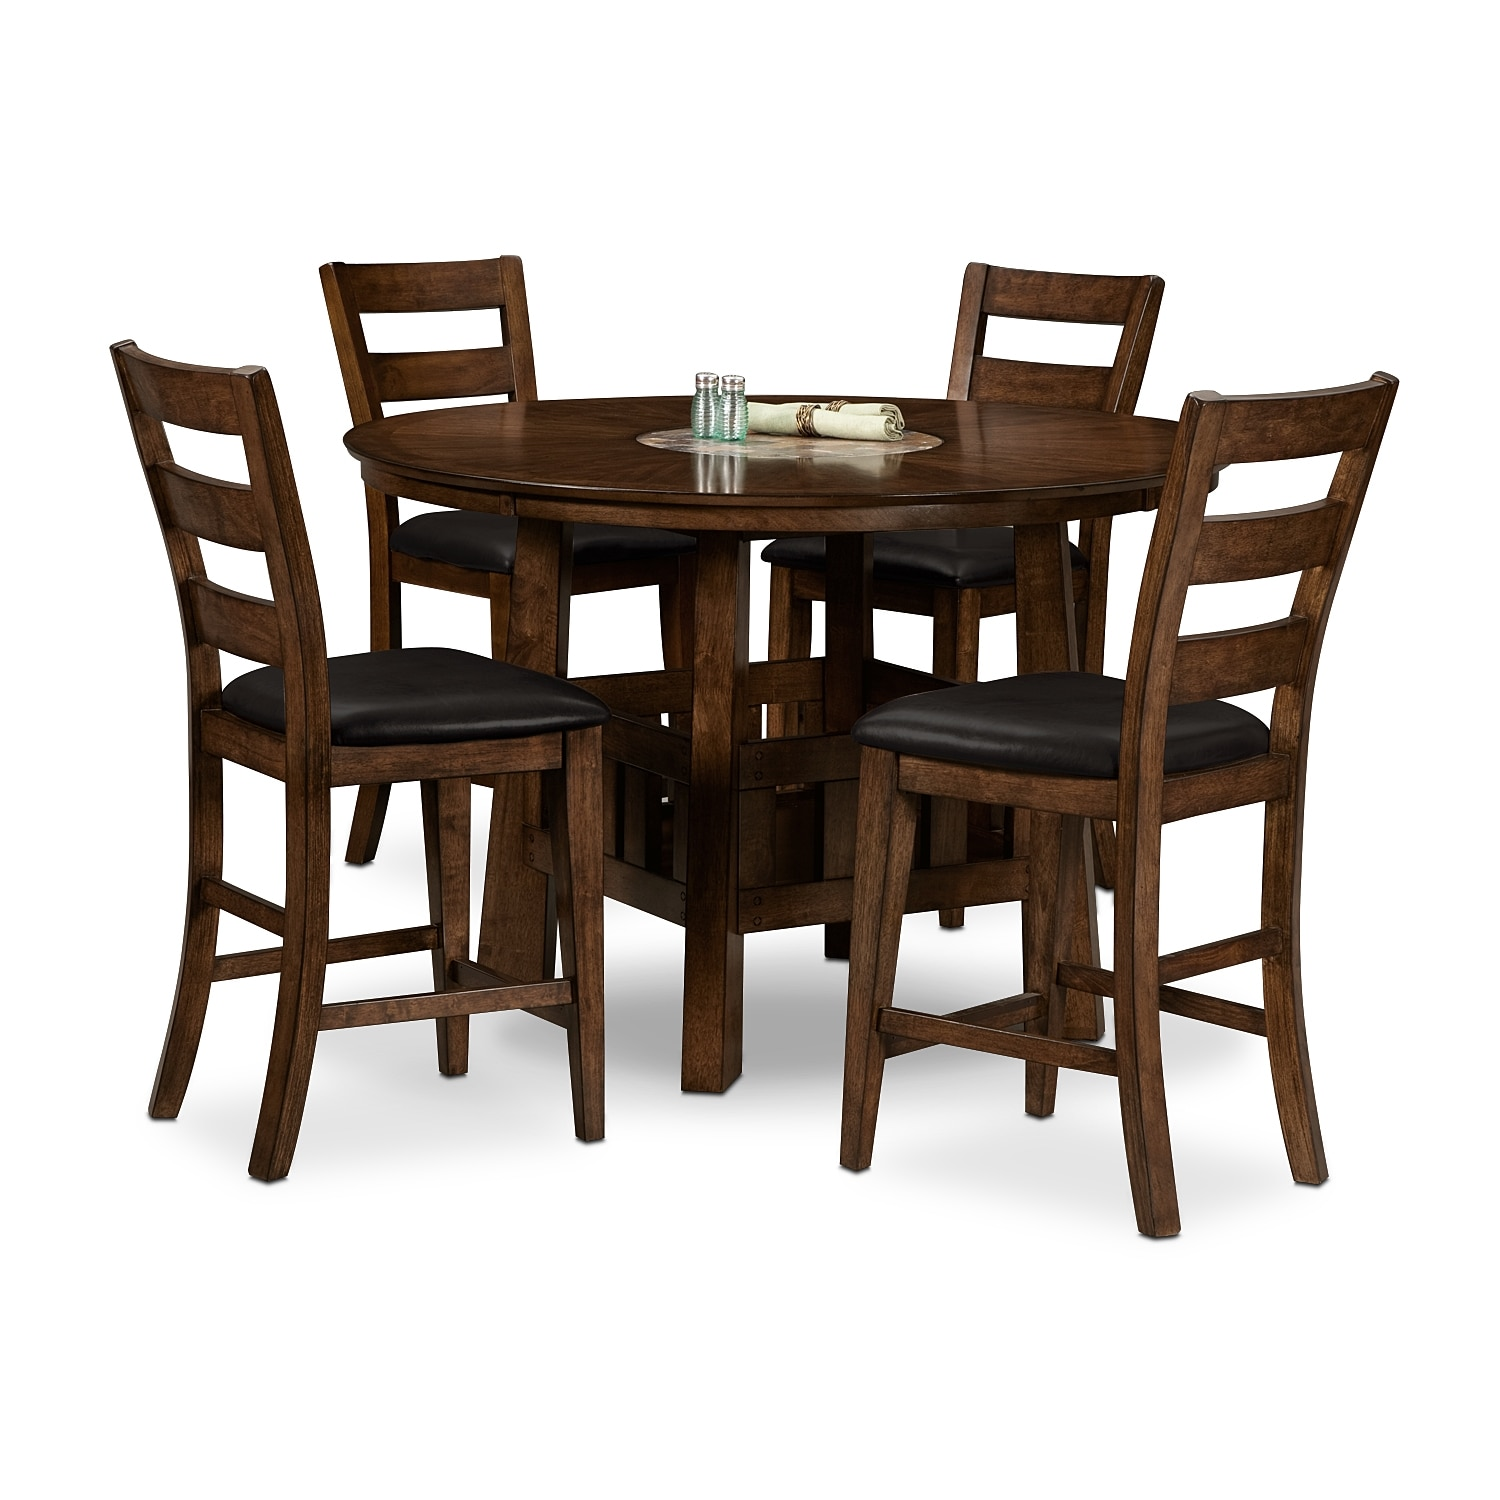 City Furniture Dining Room Superb Value City Furniture Dining Sets 4 Value City Furniture